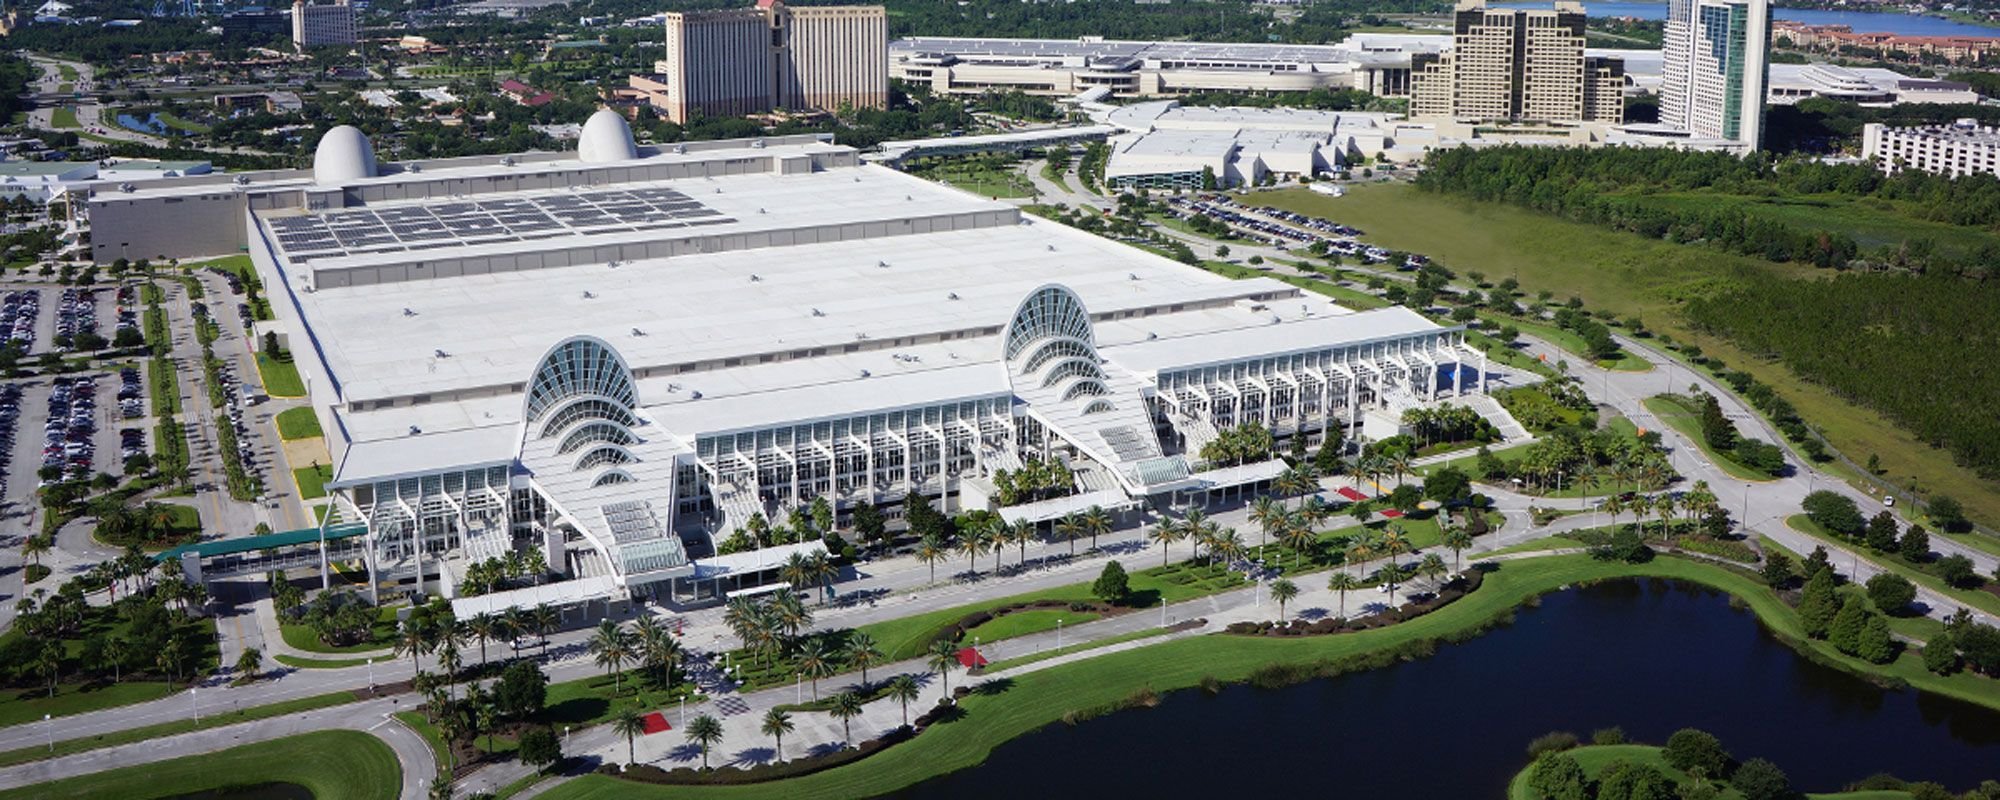 Orange County Convention Center – OCCC